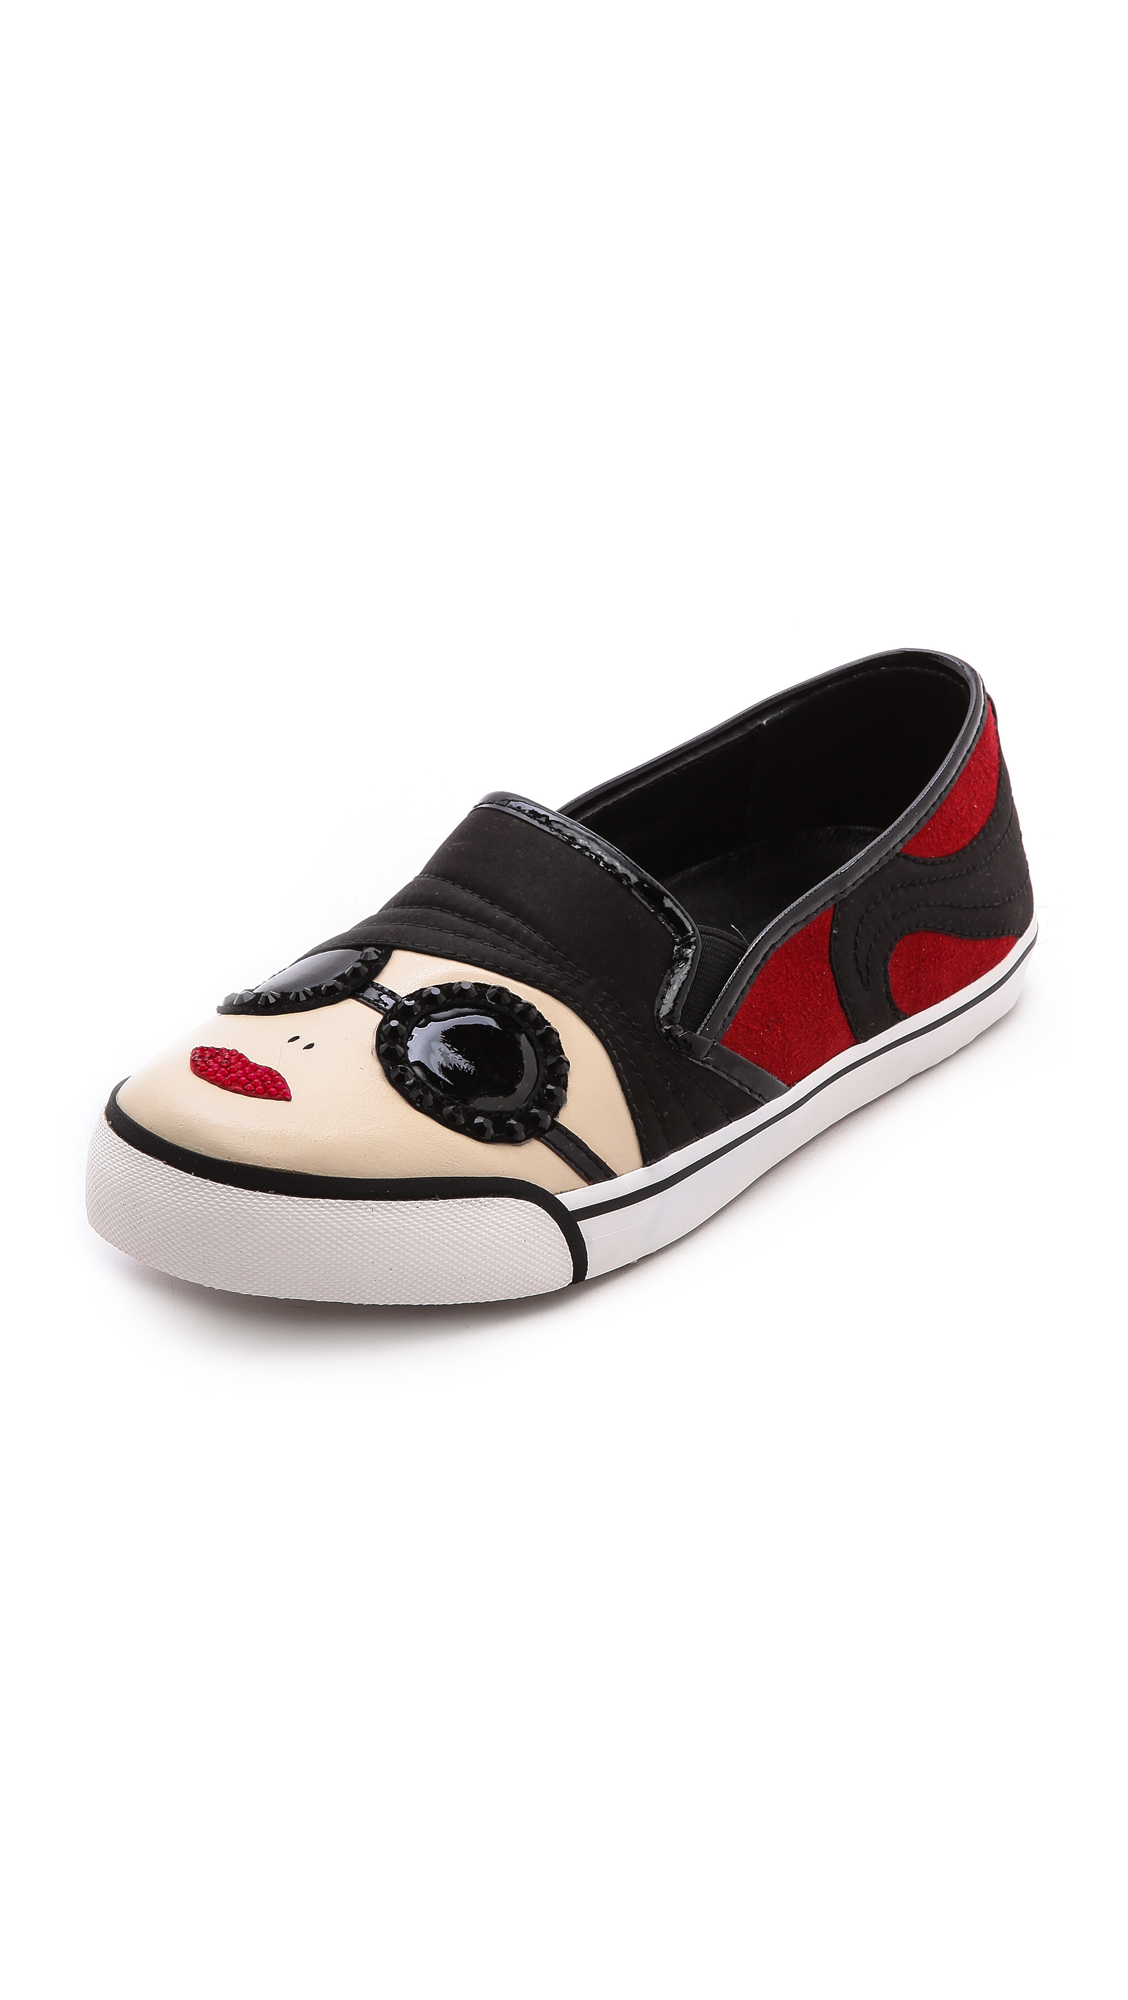 Alice   olivia stacey face slip on sneakers